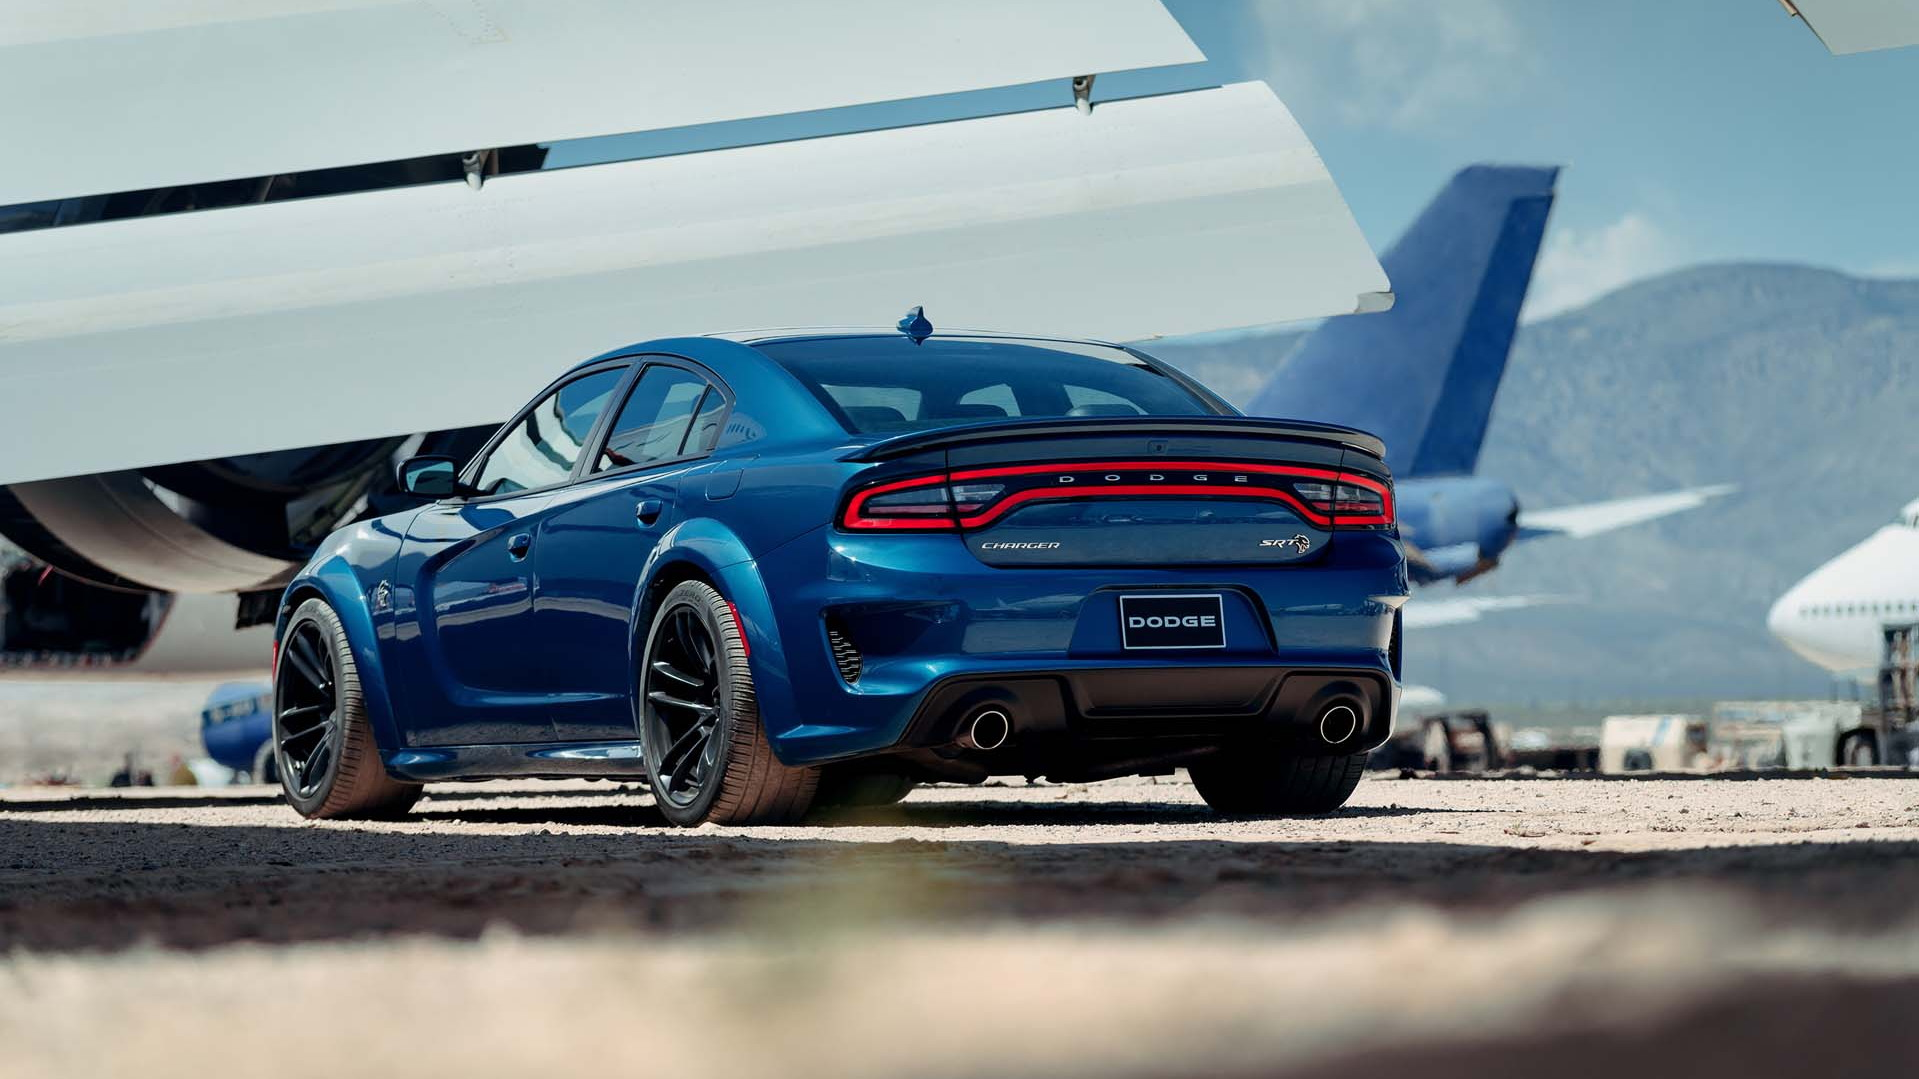 2020 Dodge Charger Srt Hellcat Widebody Already Gets Nhra Funny Car Treatment